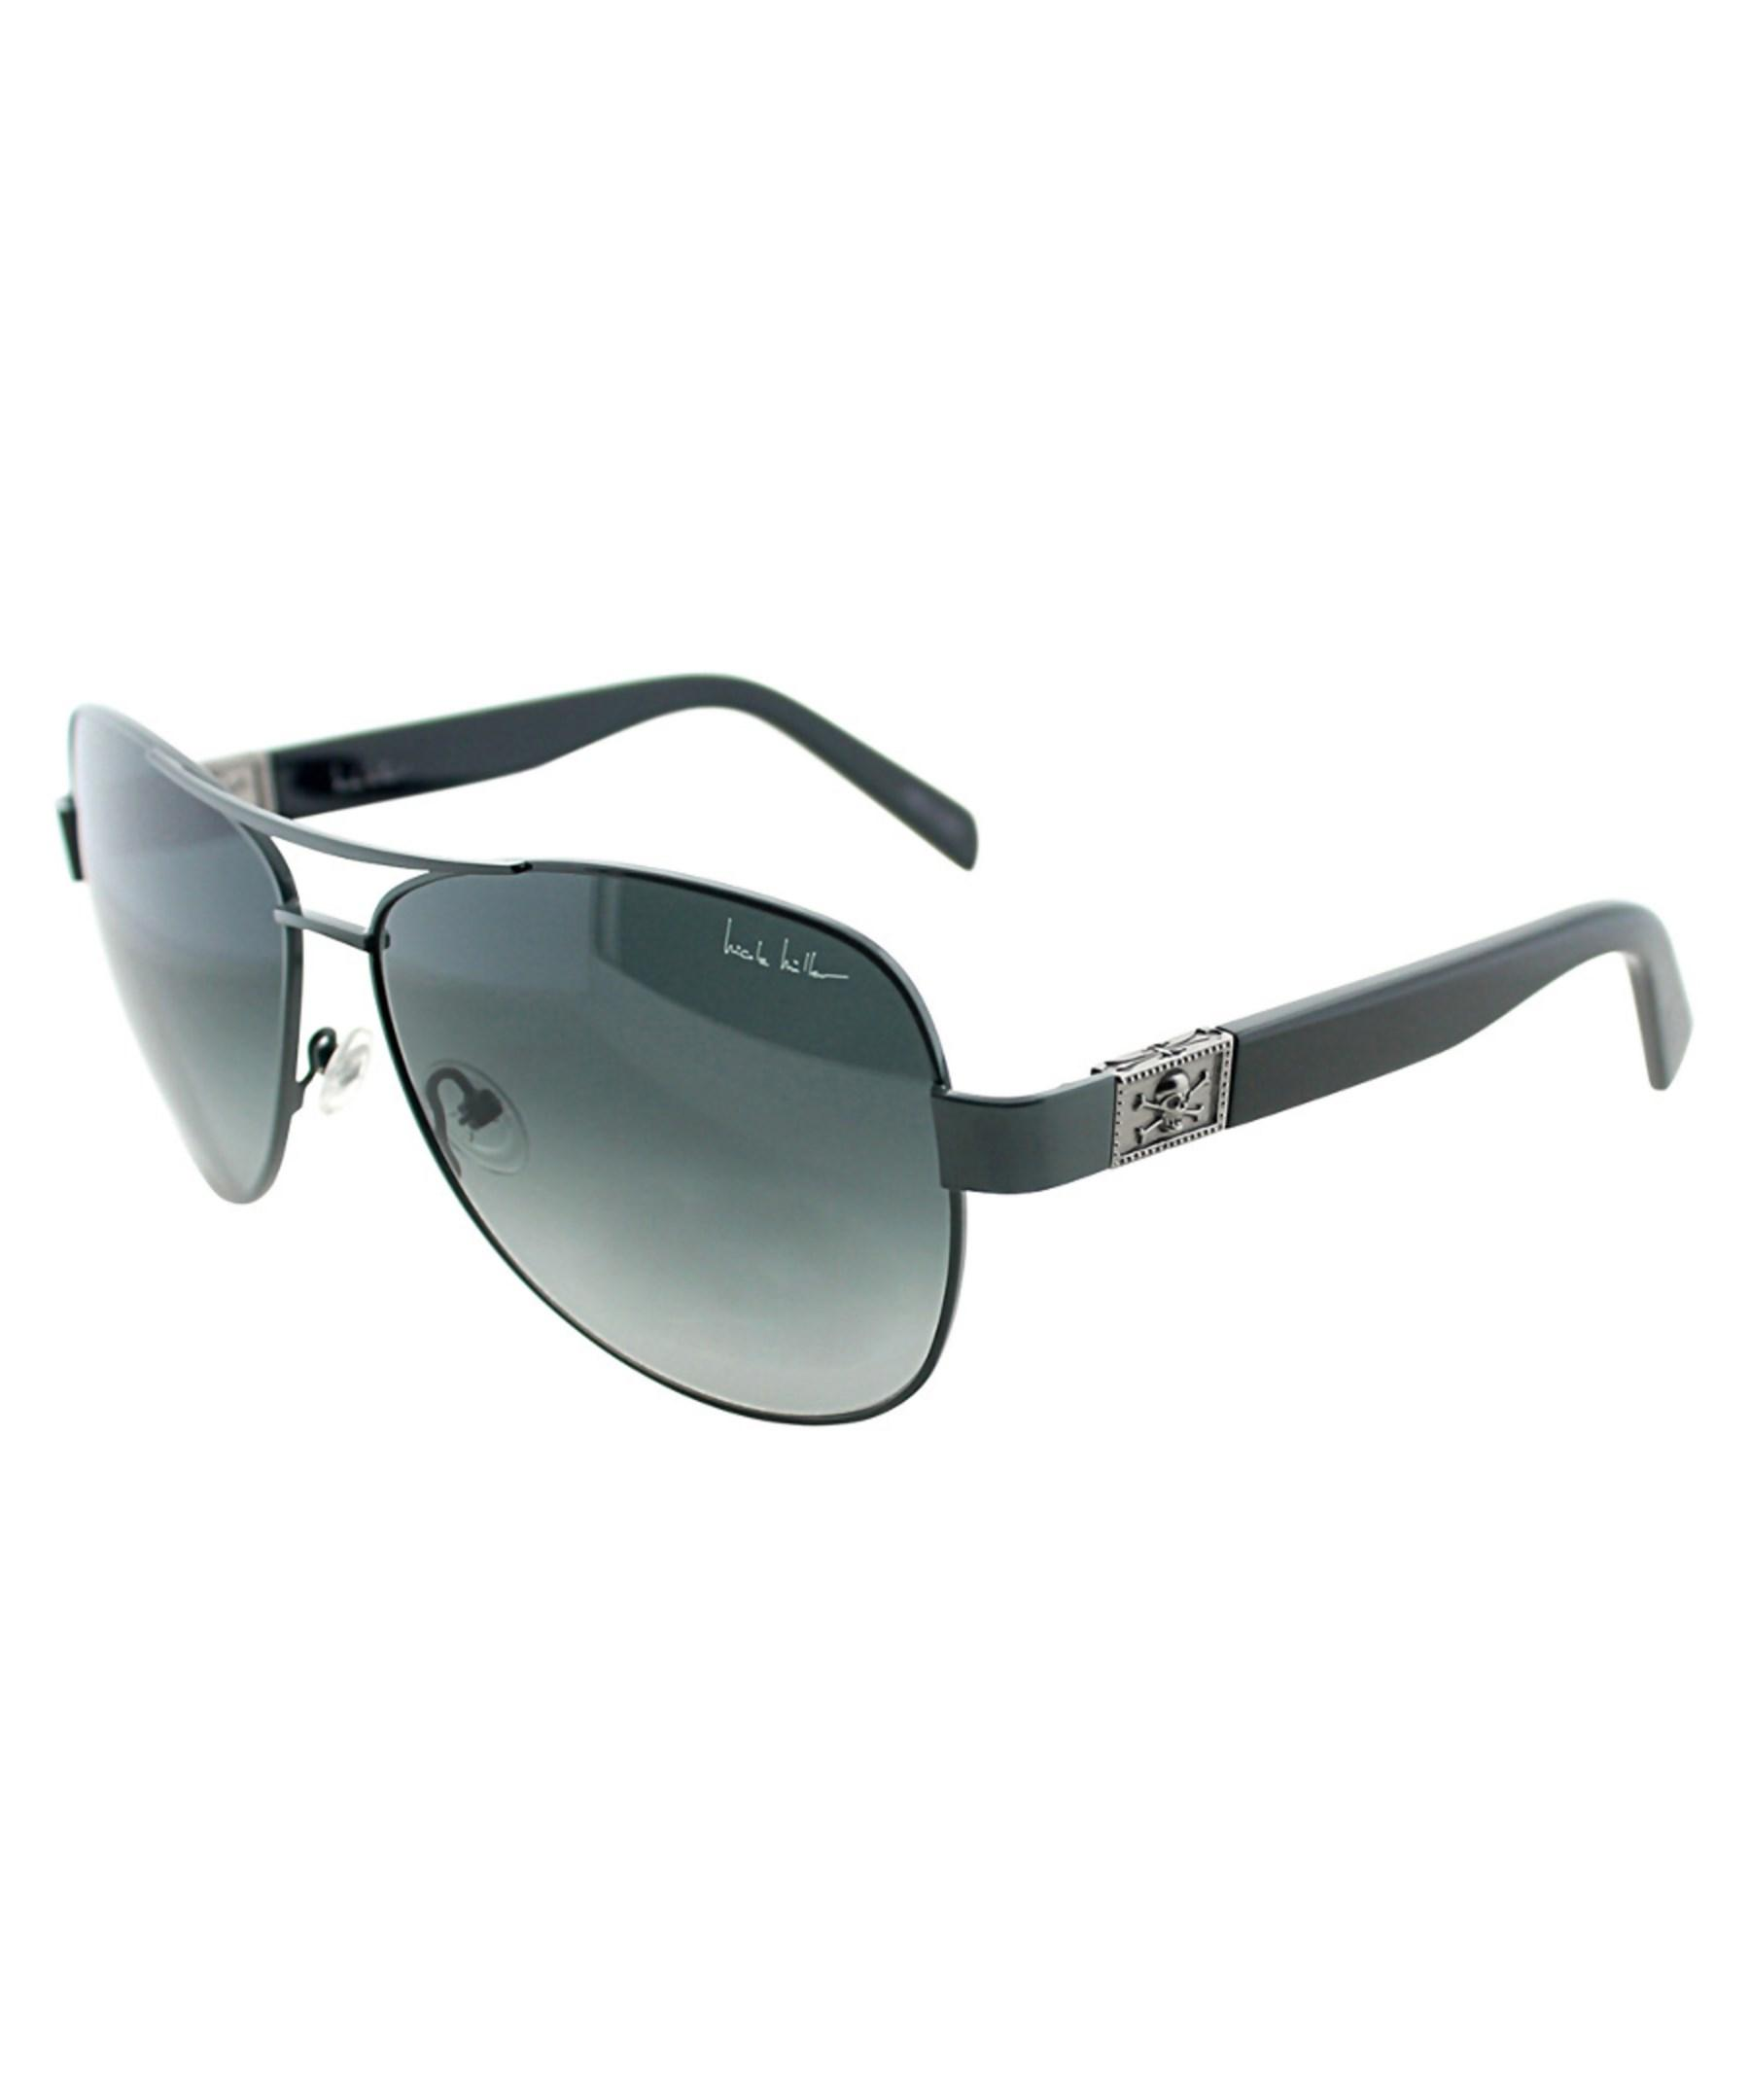 58434f35 Lyst - Nicole miller Unisex Stone Sunglasses for Men